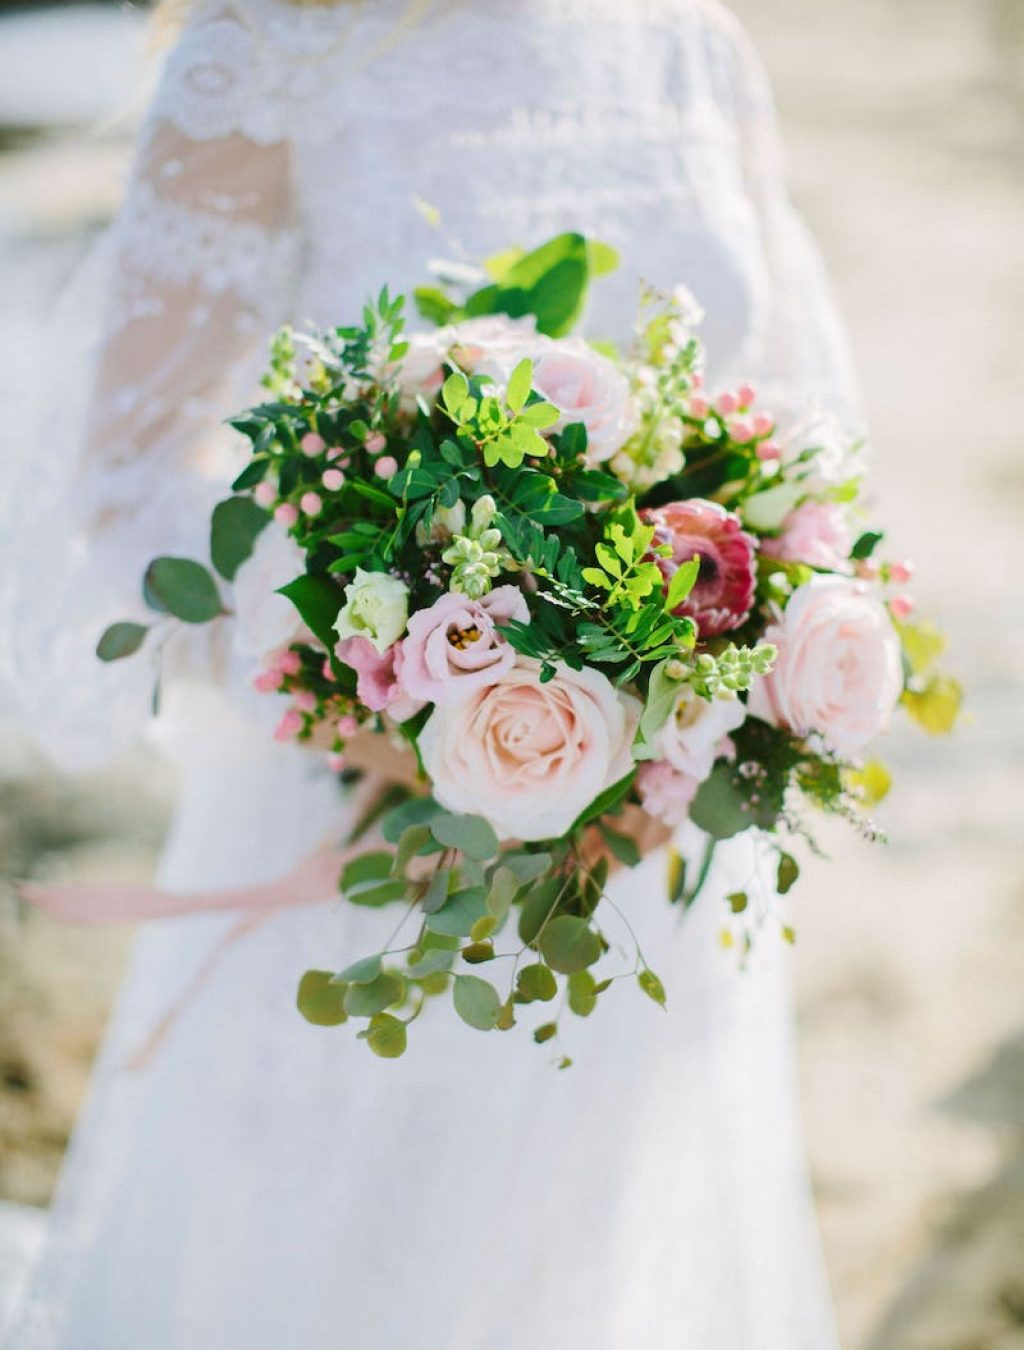 wedding bride bouquet with flowers, wedding dress for wedding in Mallorca